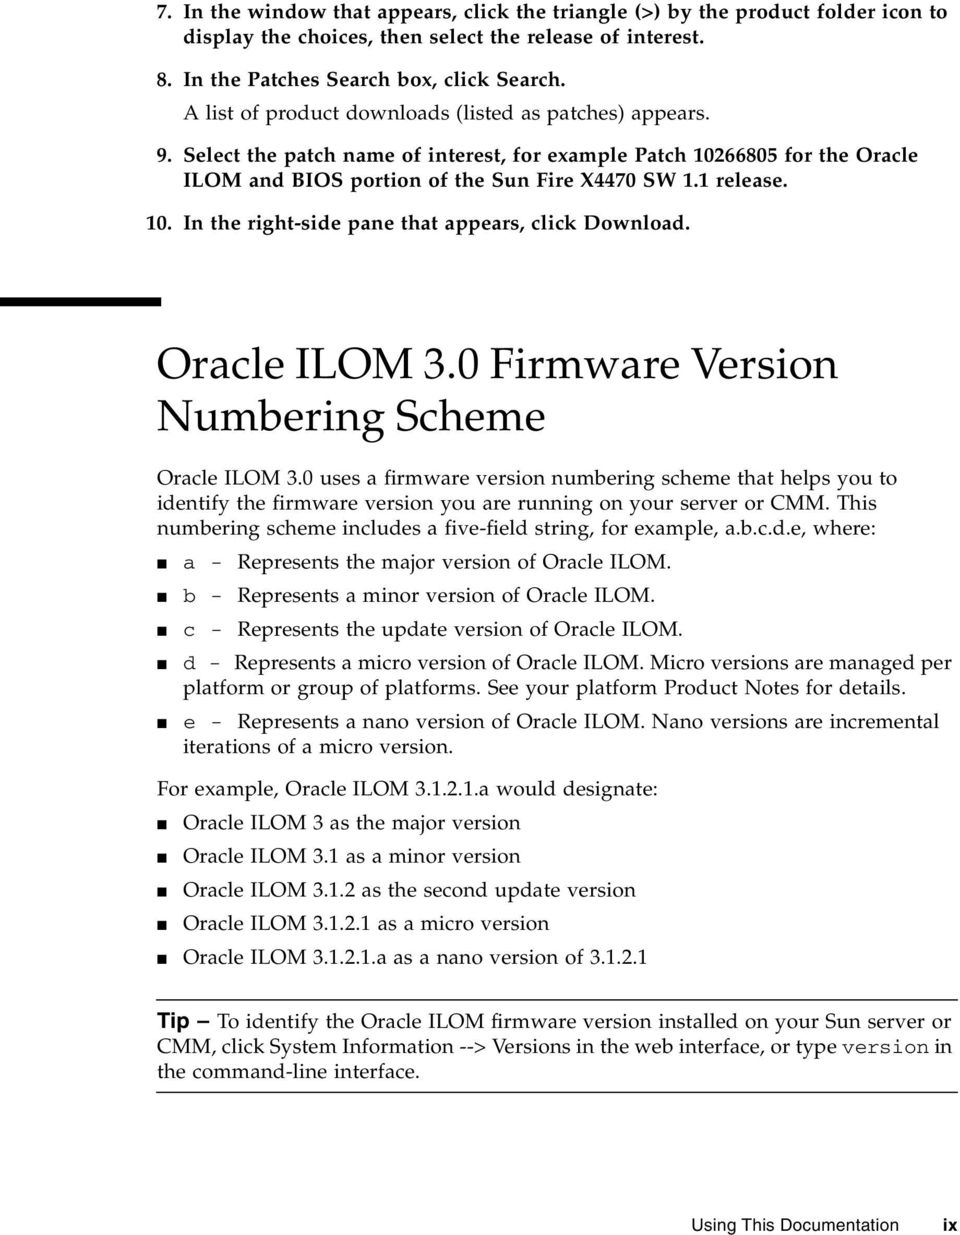 Oracle ILOM 3.0 Firmware Version Numbering Scheme Oracle ILOM 3.0 uses a firmware version numbering scheme that helps you to identify the firmware version you are running on your server or CMM.